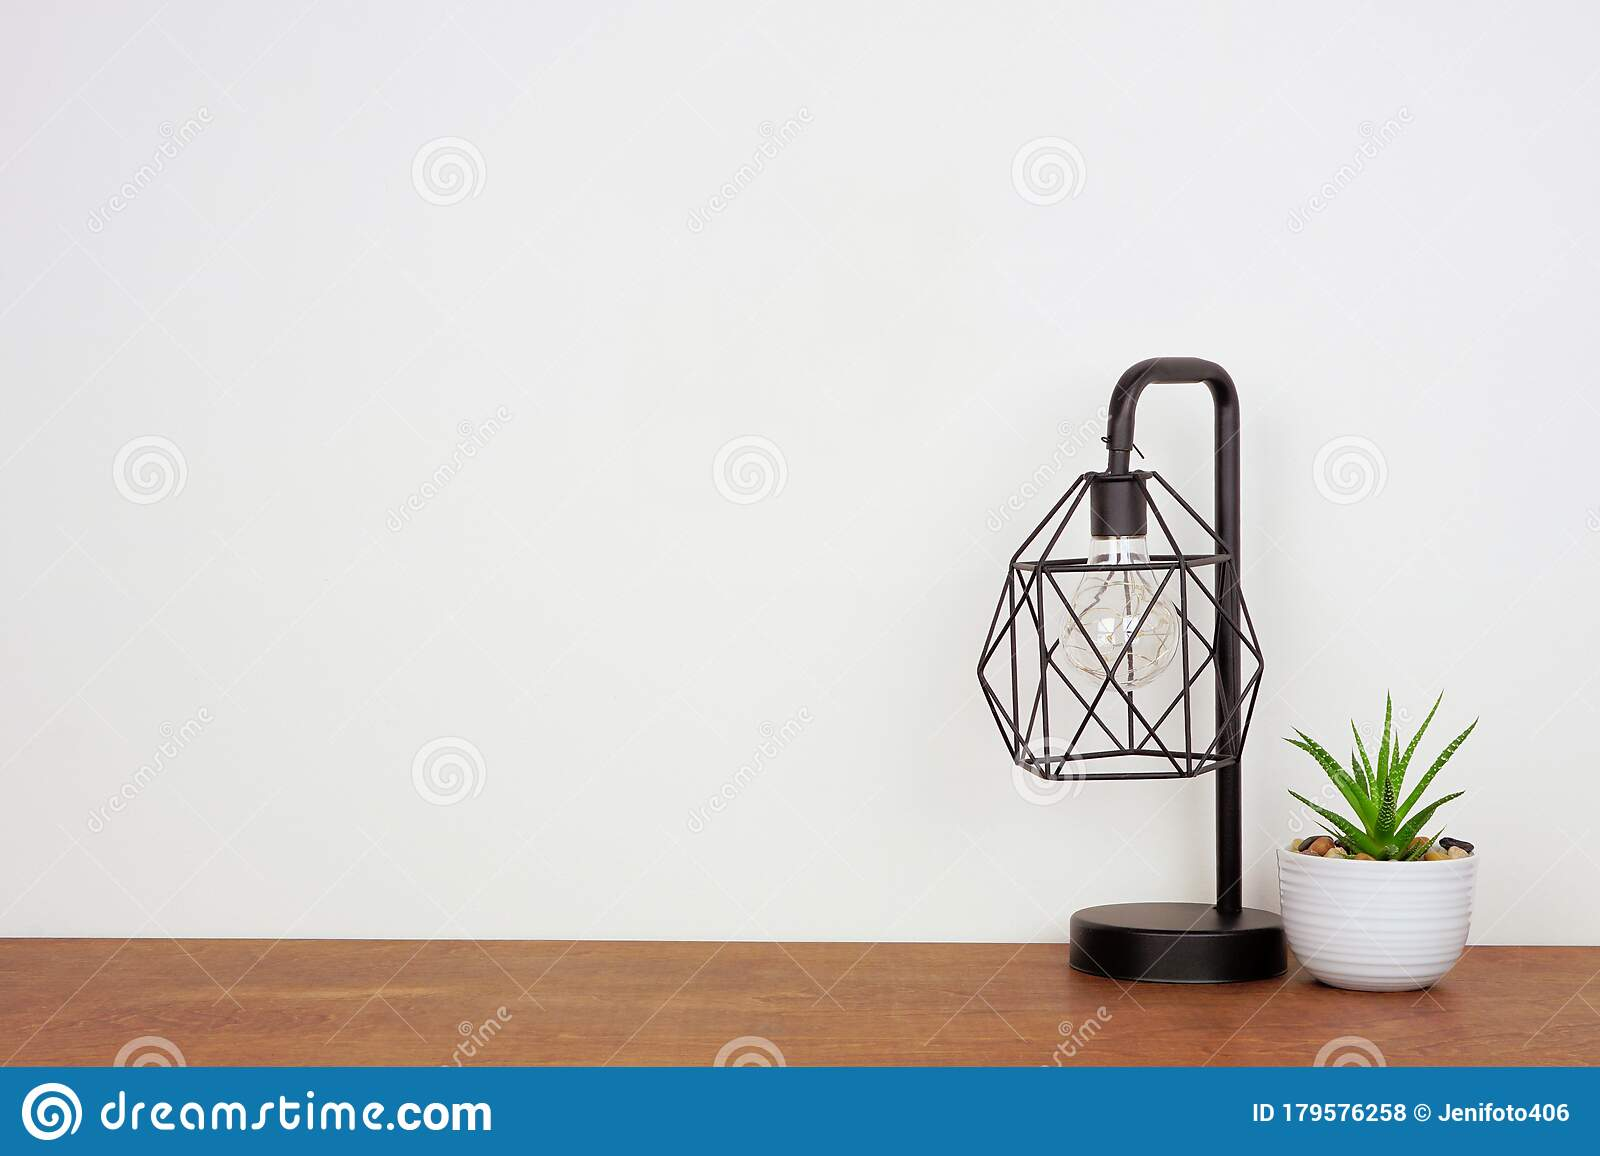 Lamp And Succulent Plant Home Decor On A Wood Shelf Against A White Wall With Copy Space Stock Photo Image Of House Design 179576258